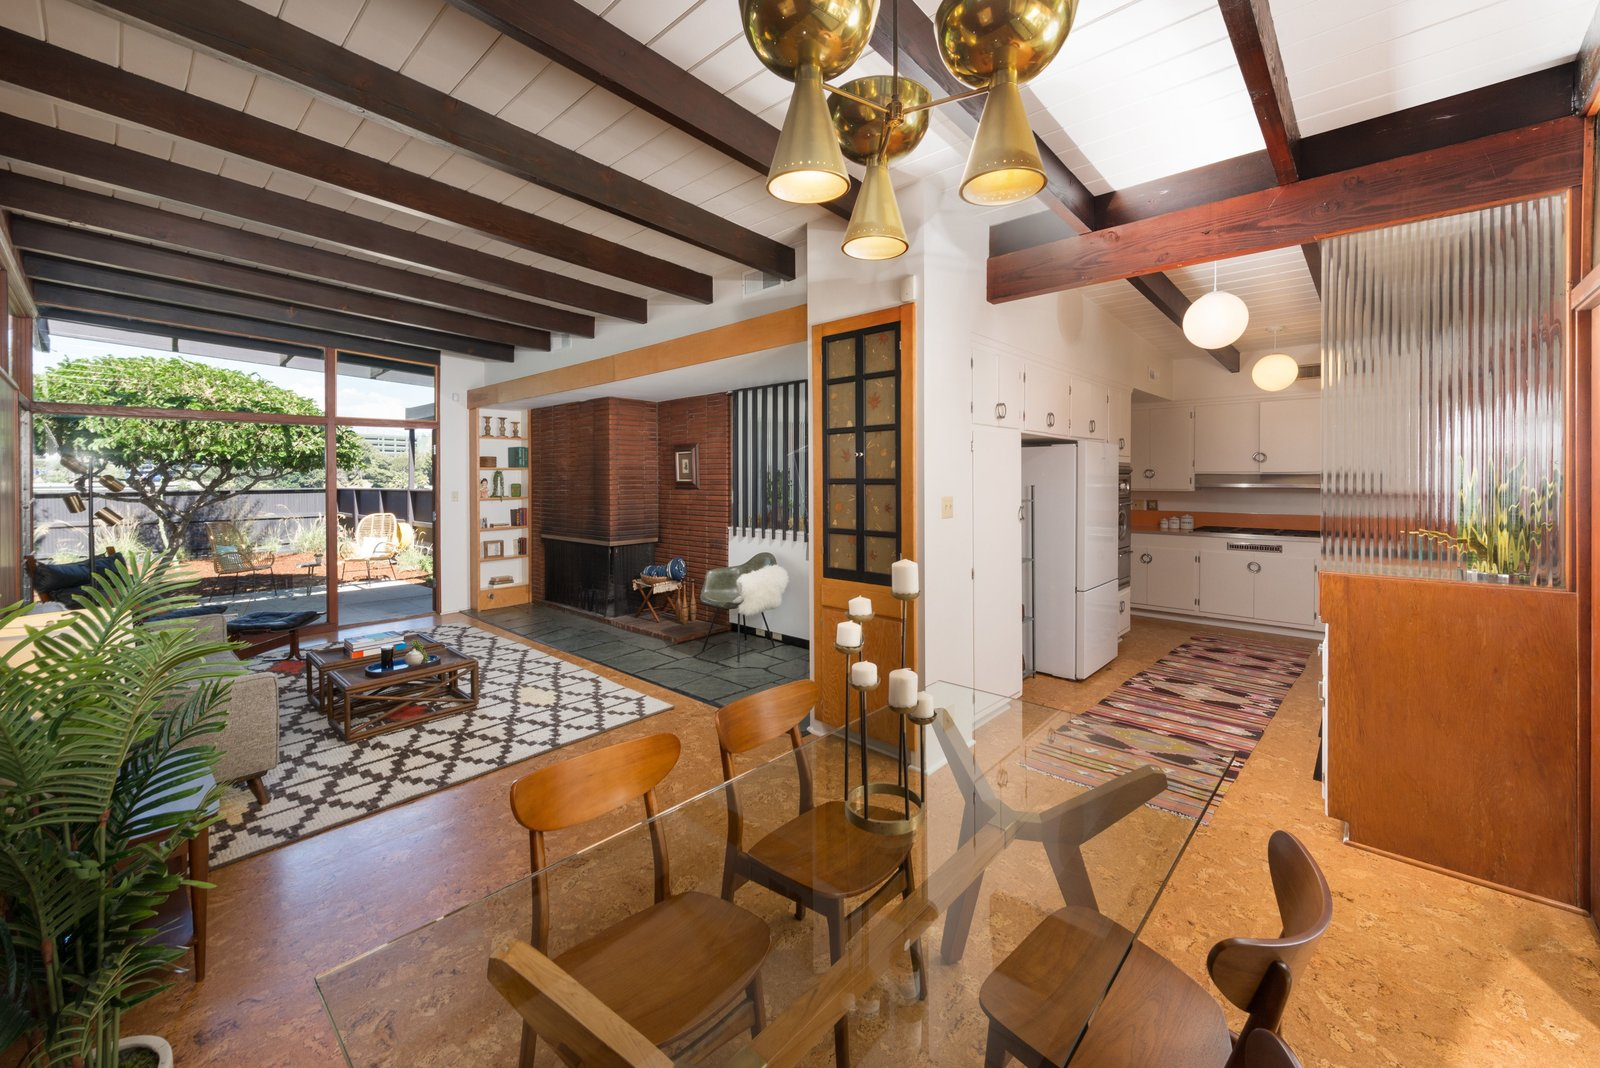 Dining, Table, Wood Burning, Accent, Chair, Cork, and Corner The kitchen is just off the dining area.  Best Dining Table Chair Cork Photos from Snag This Hollywood Hills Midcentury Home For $1M